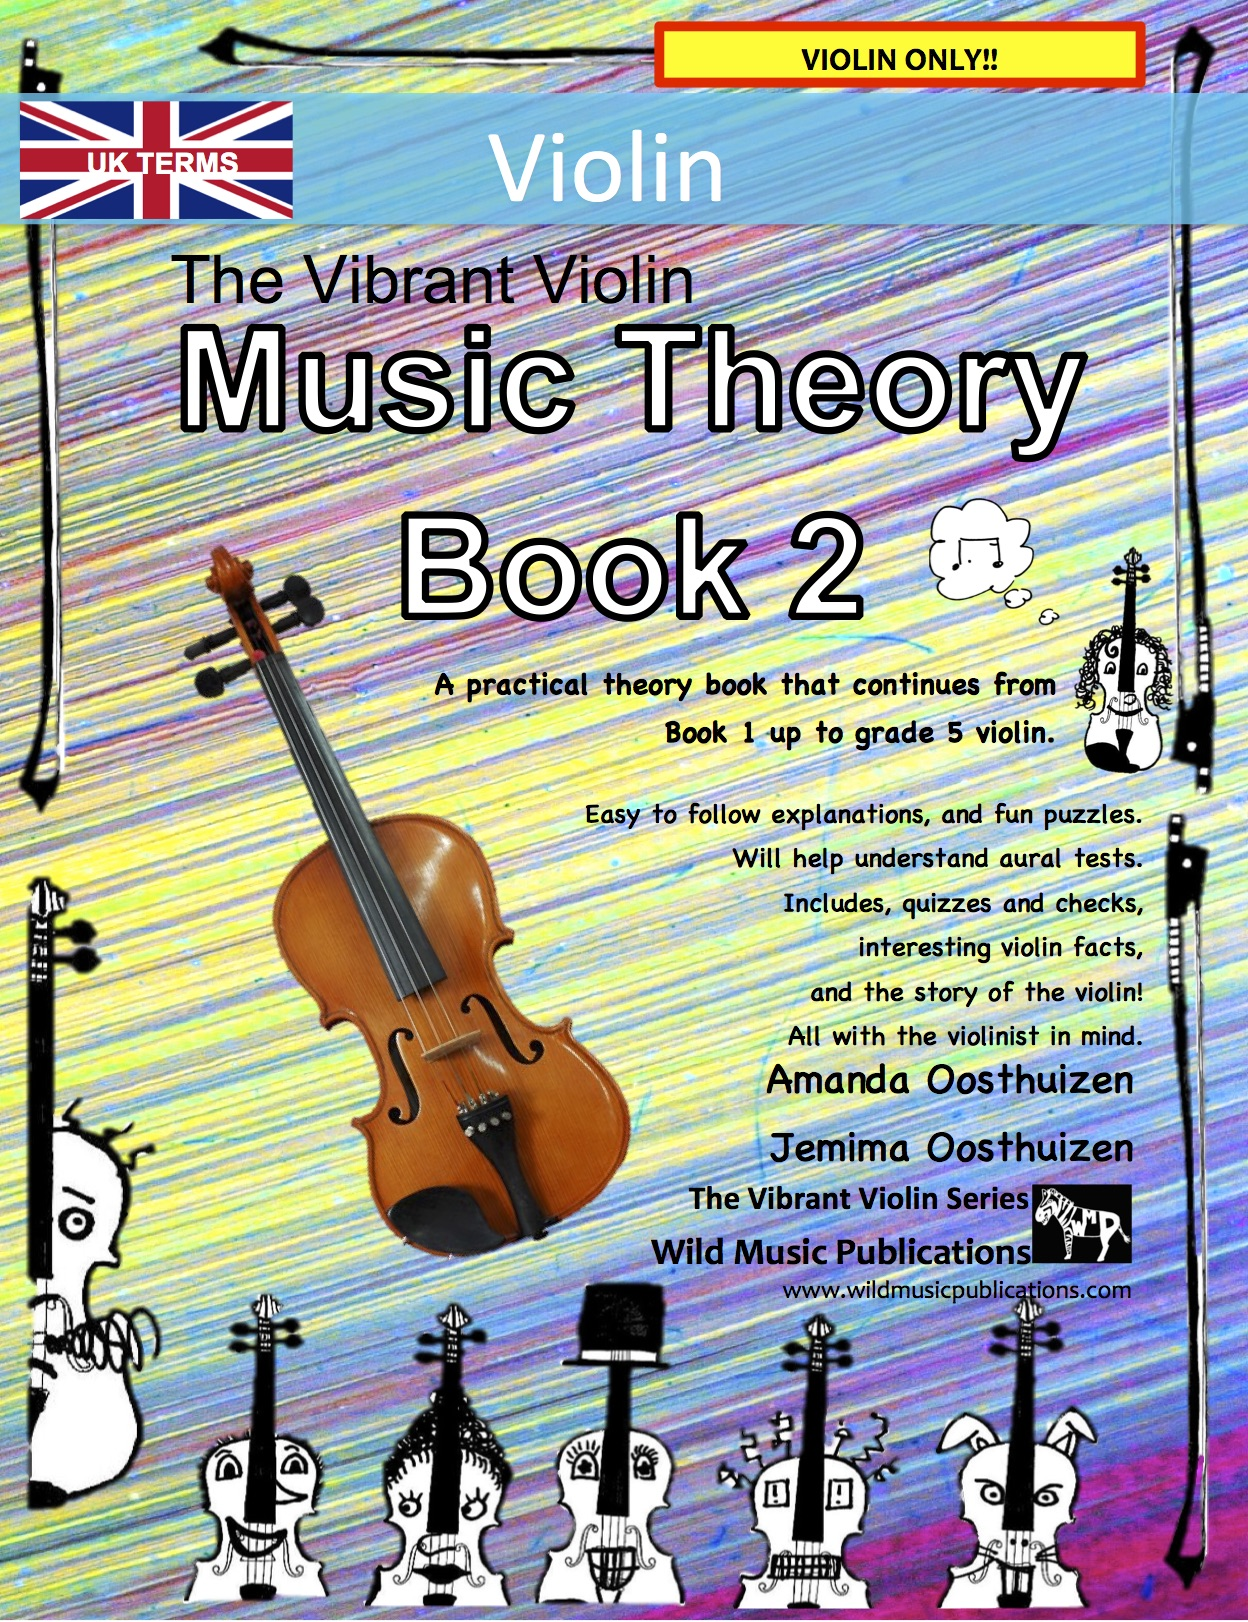 The Vibrant Violin Music Theory Book 2